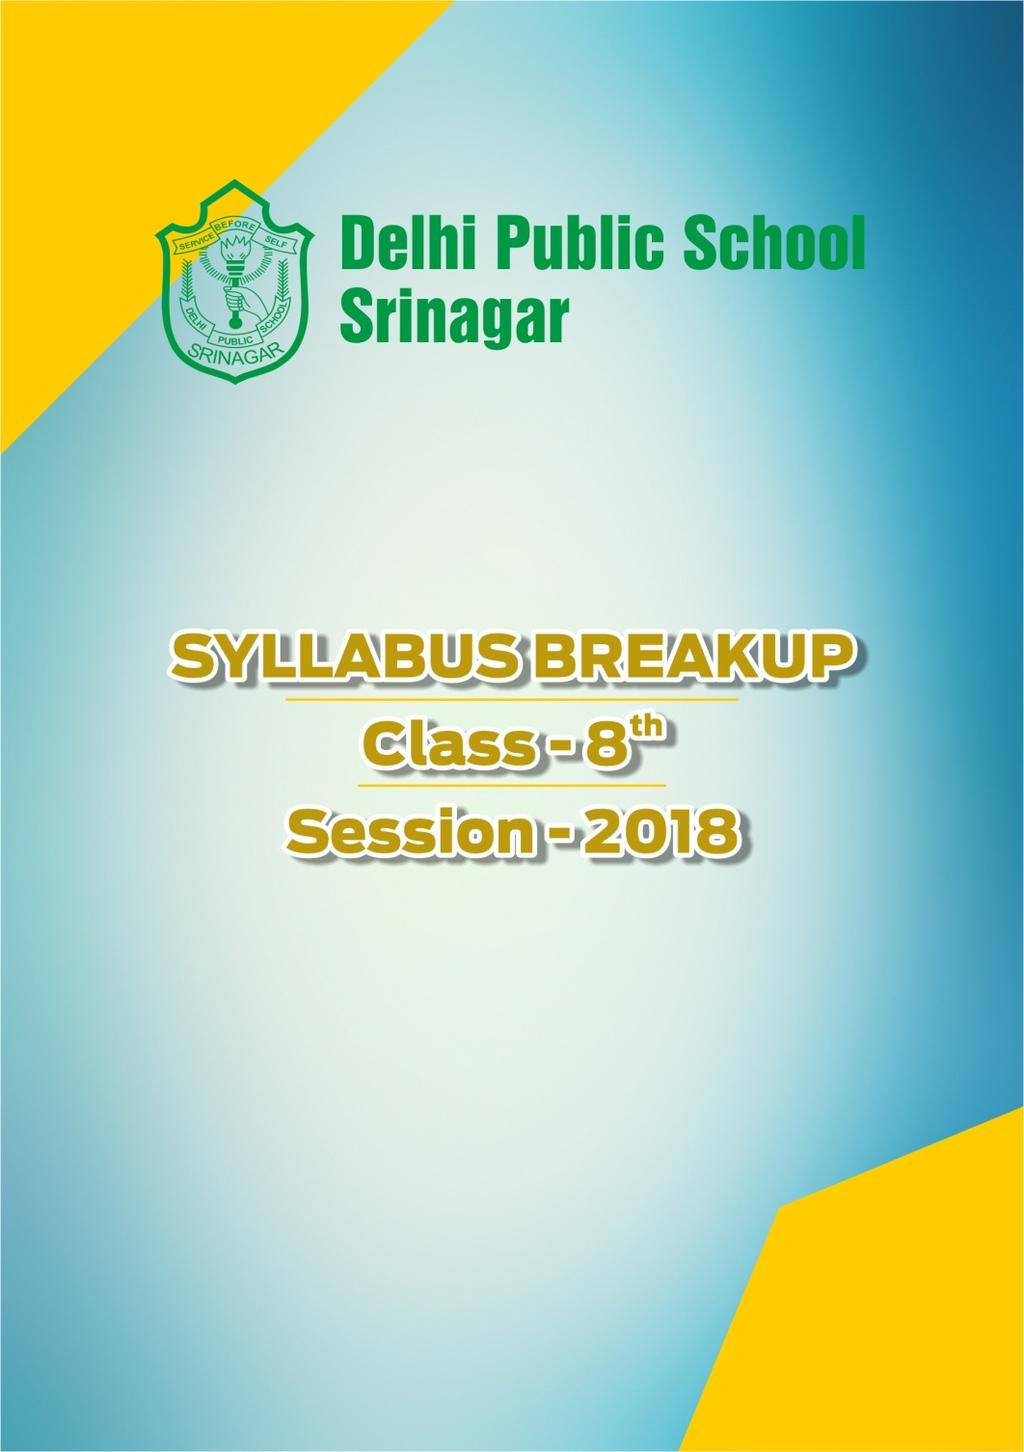 Delhi Public School Srinagar 1 Syllabus Breakup Pdf